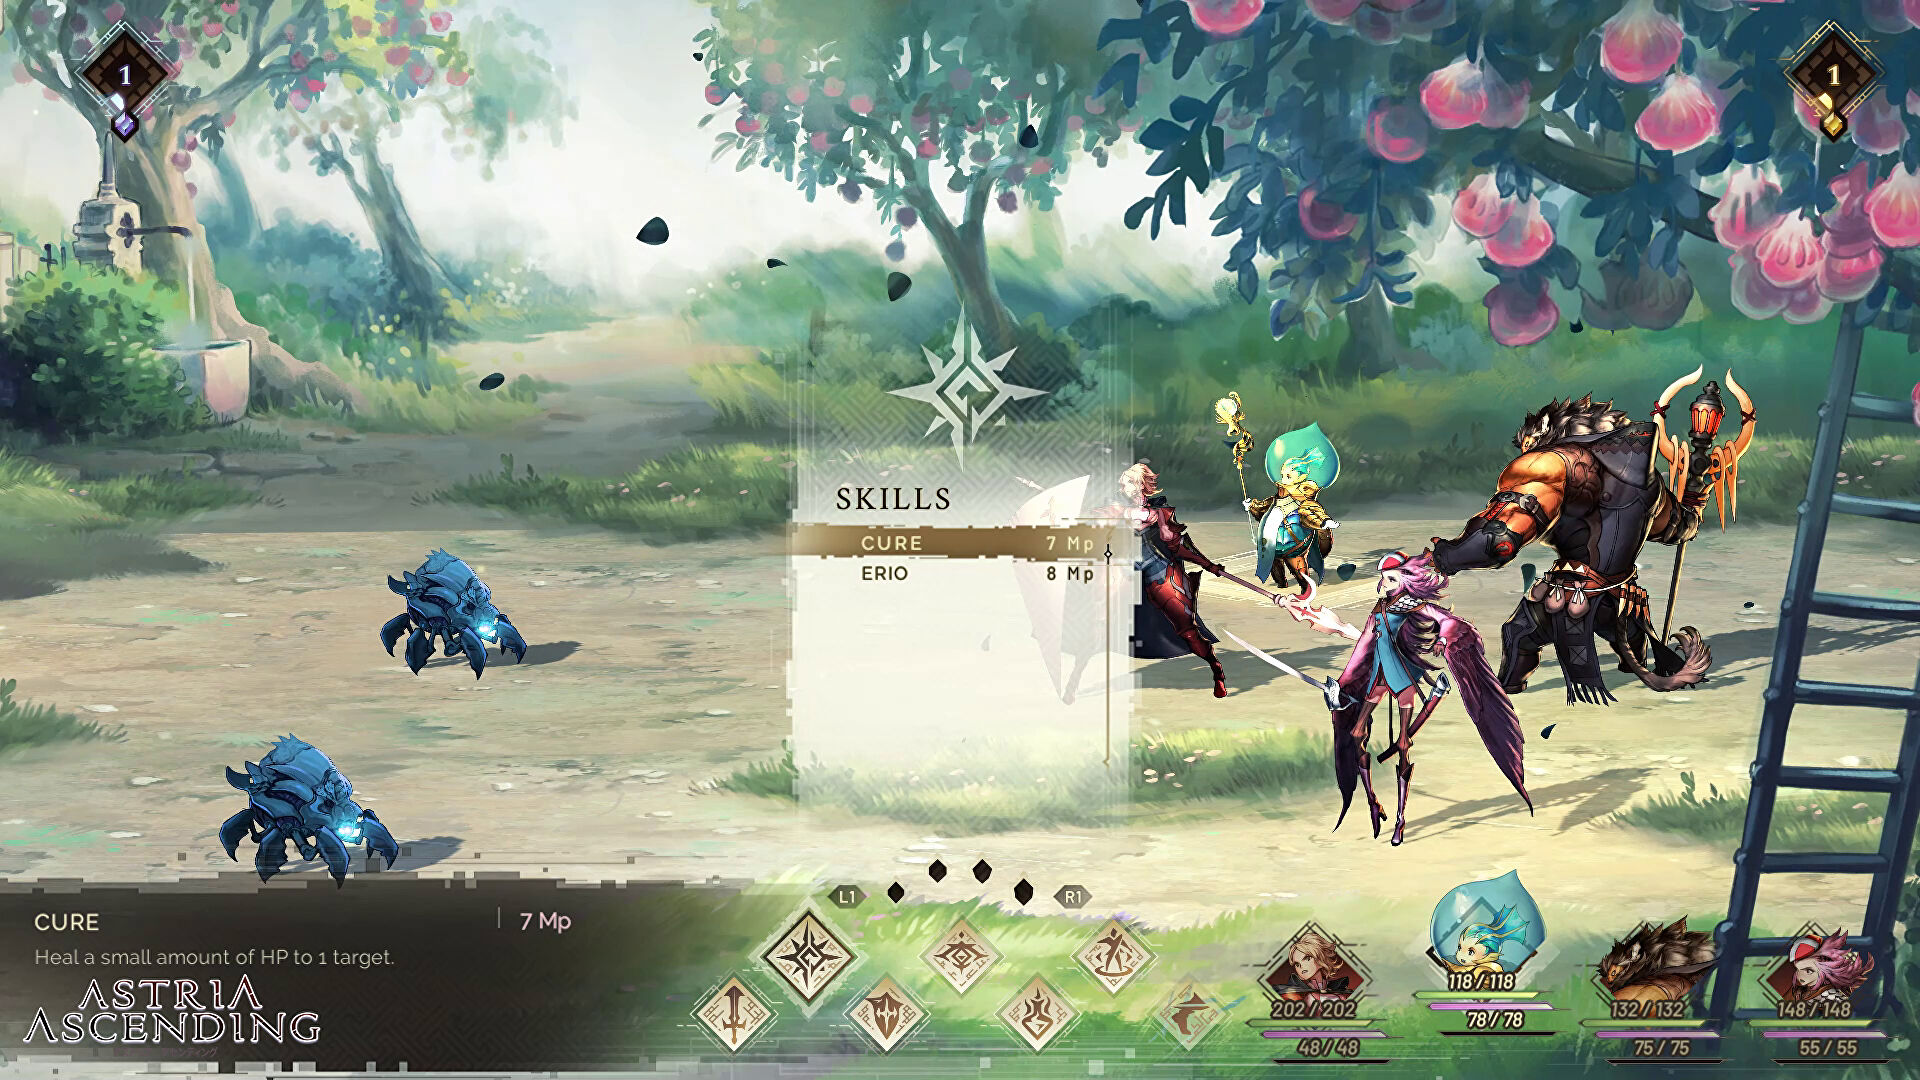 Astria Ascending review - A confusing slog that's also pretty | VG247